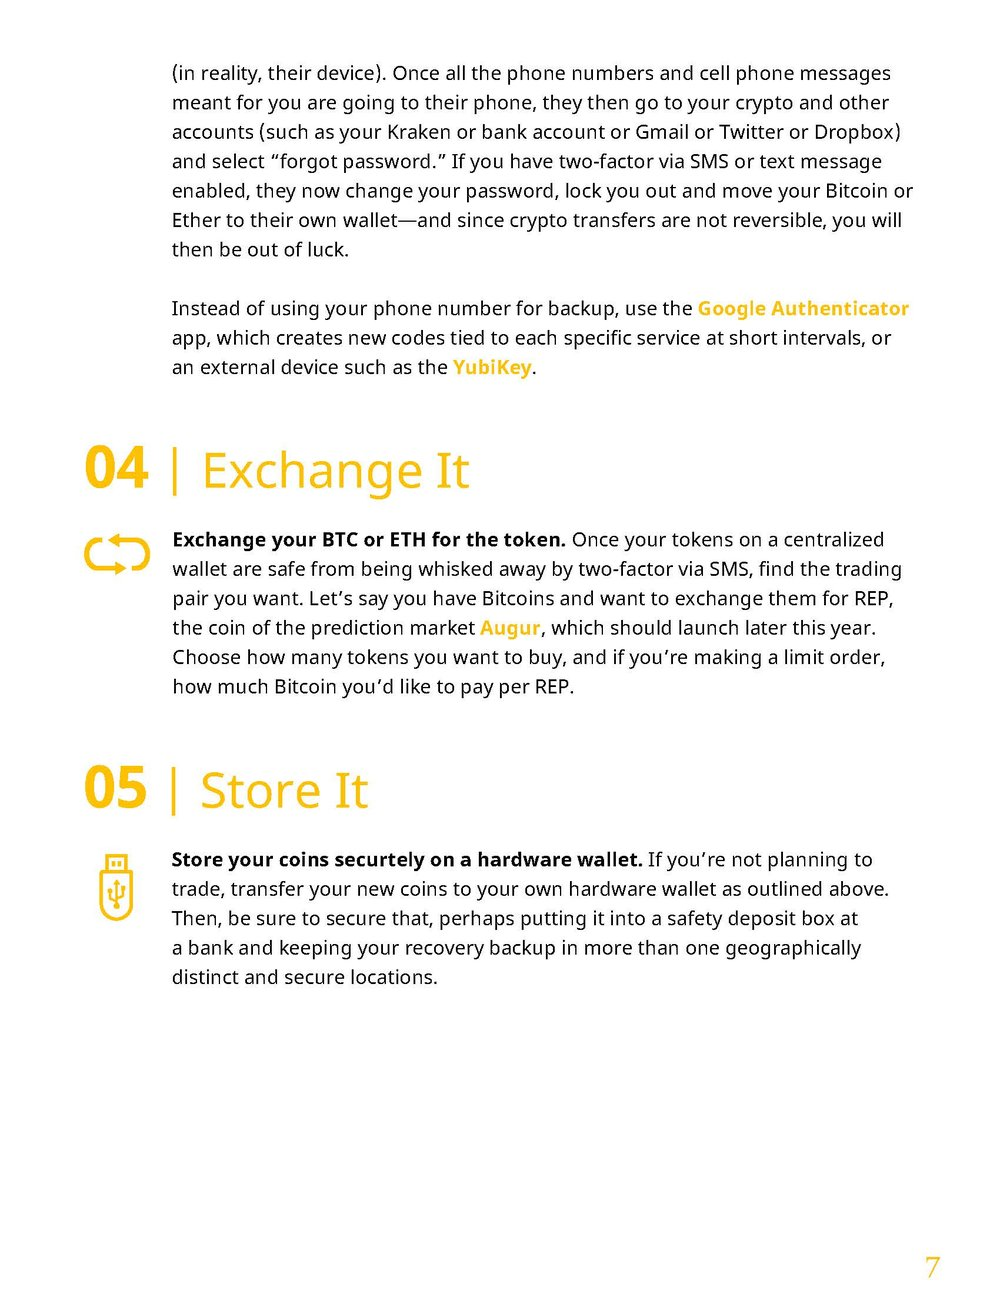 forbes-crypto-newsletter-r04_Page_07.jpg